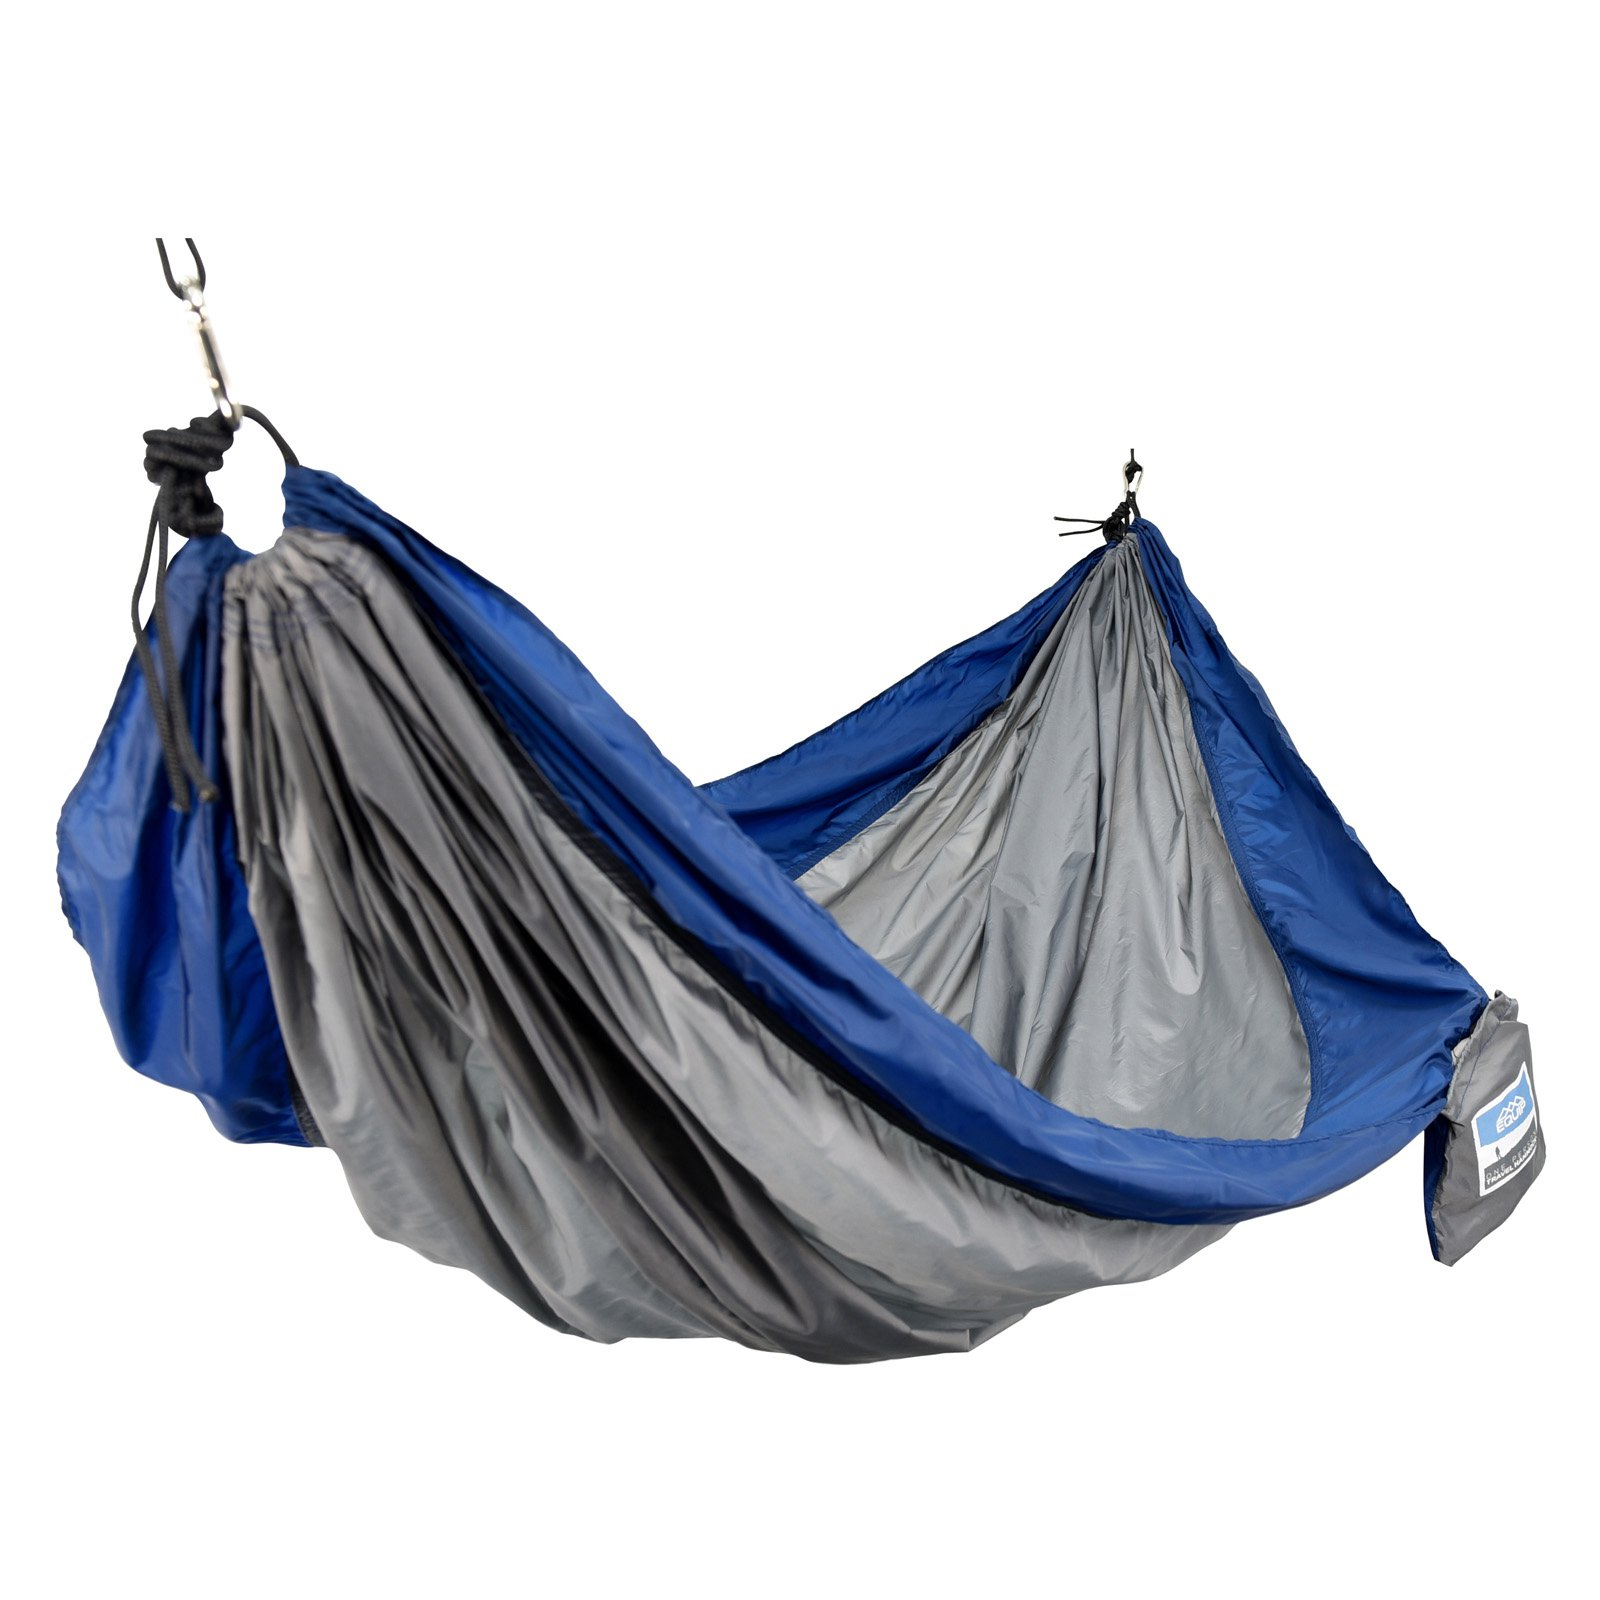 Equip 1-Person Durable Nylon Portable Hammock for Camping, Hiking, Backpacking, Travel, Includes Hanging Kit, Navy/Grey